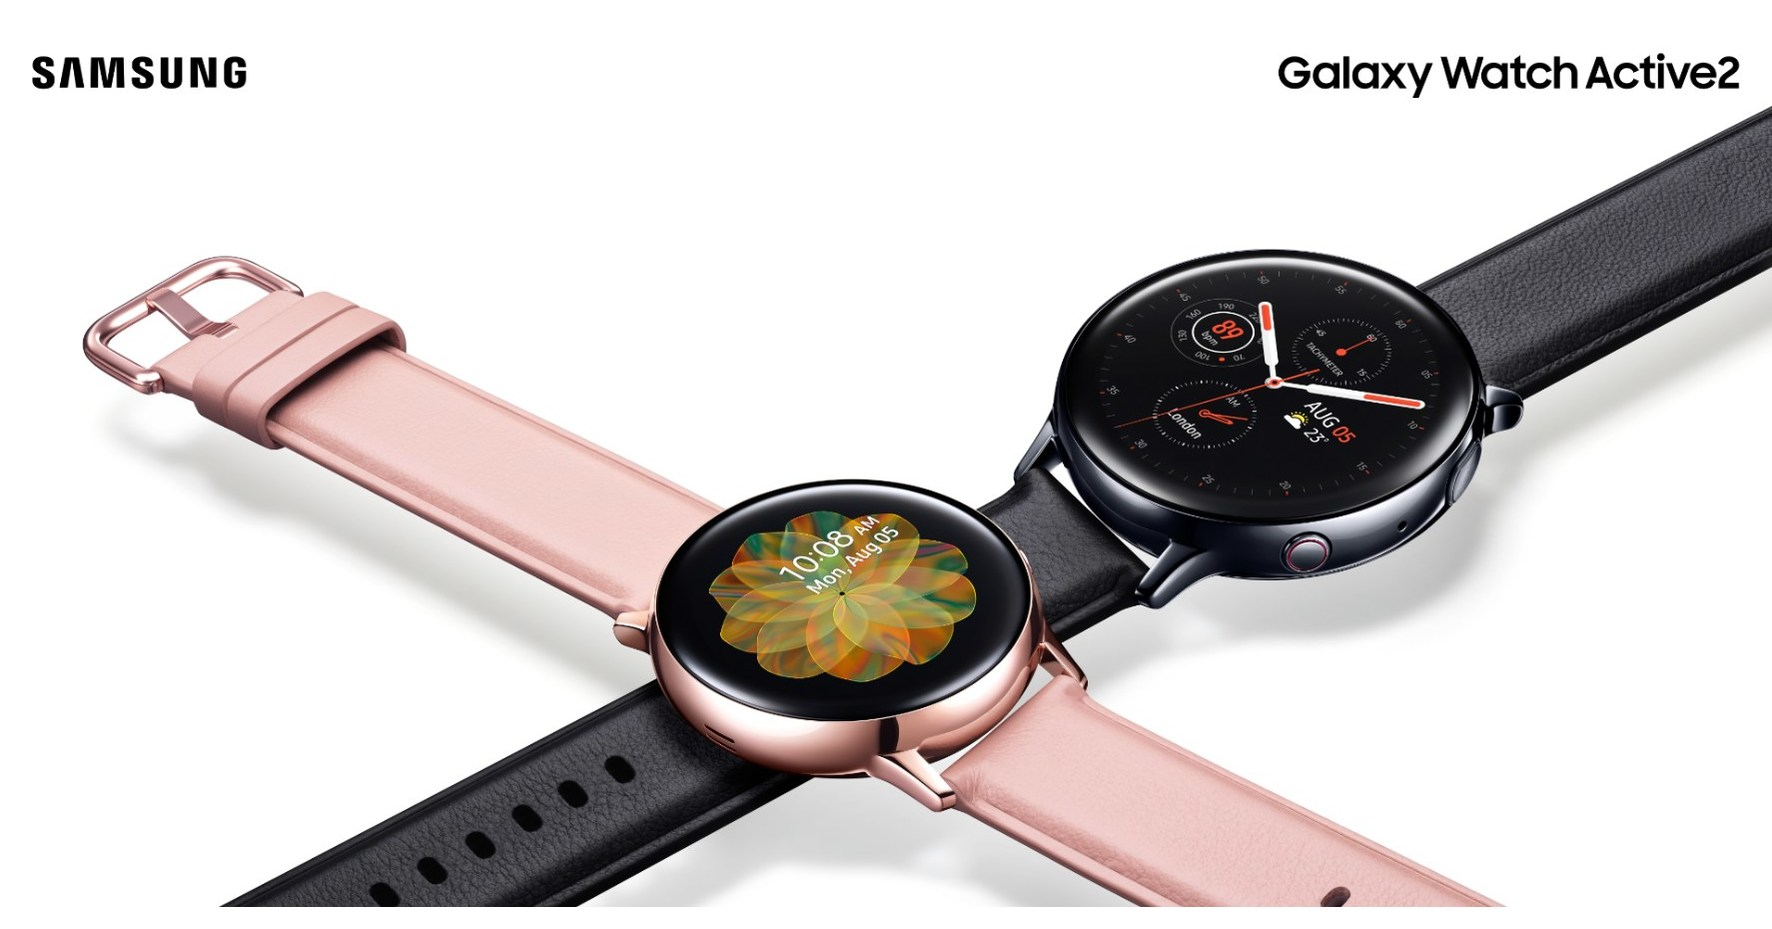 Samsung Canada Launches Galaxy Watch Active2, Designed For